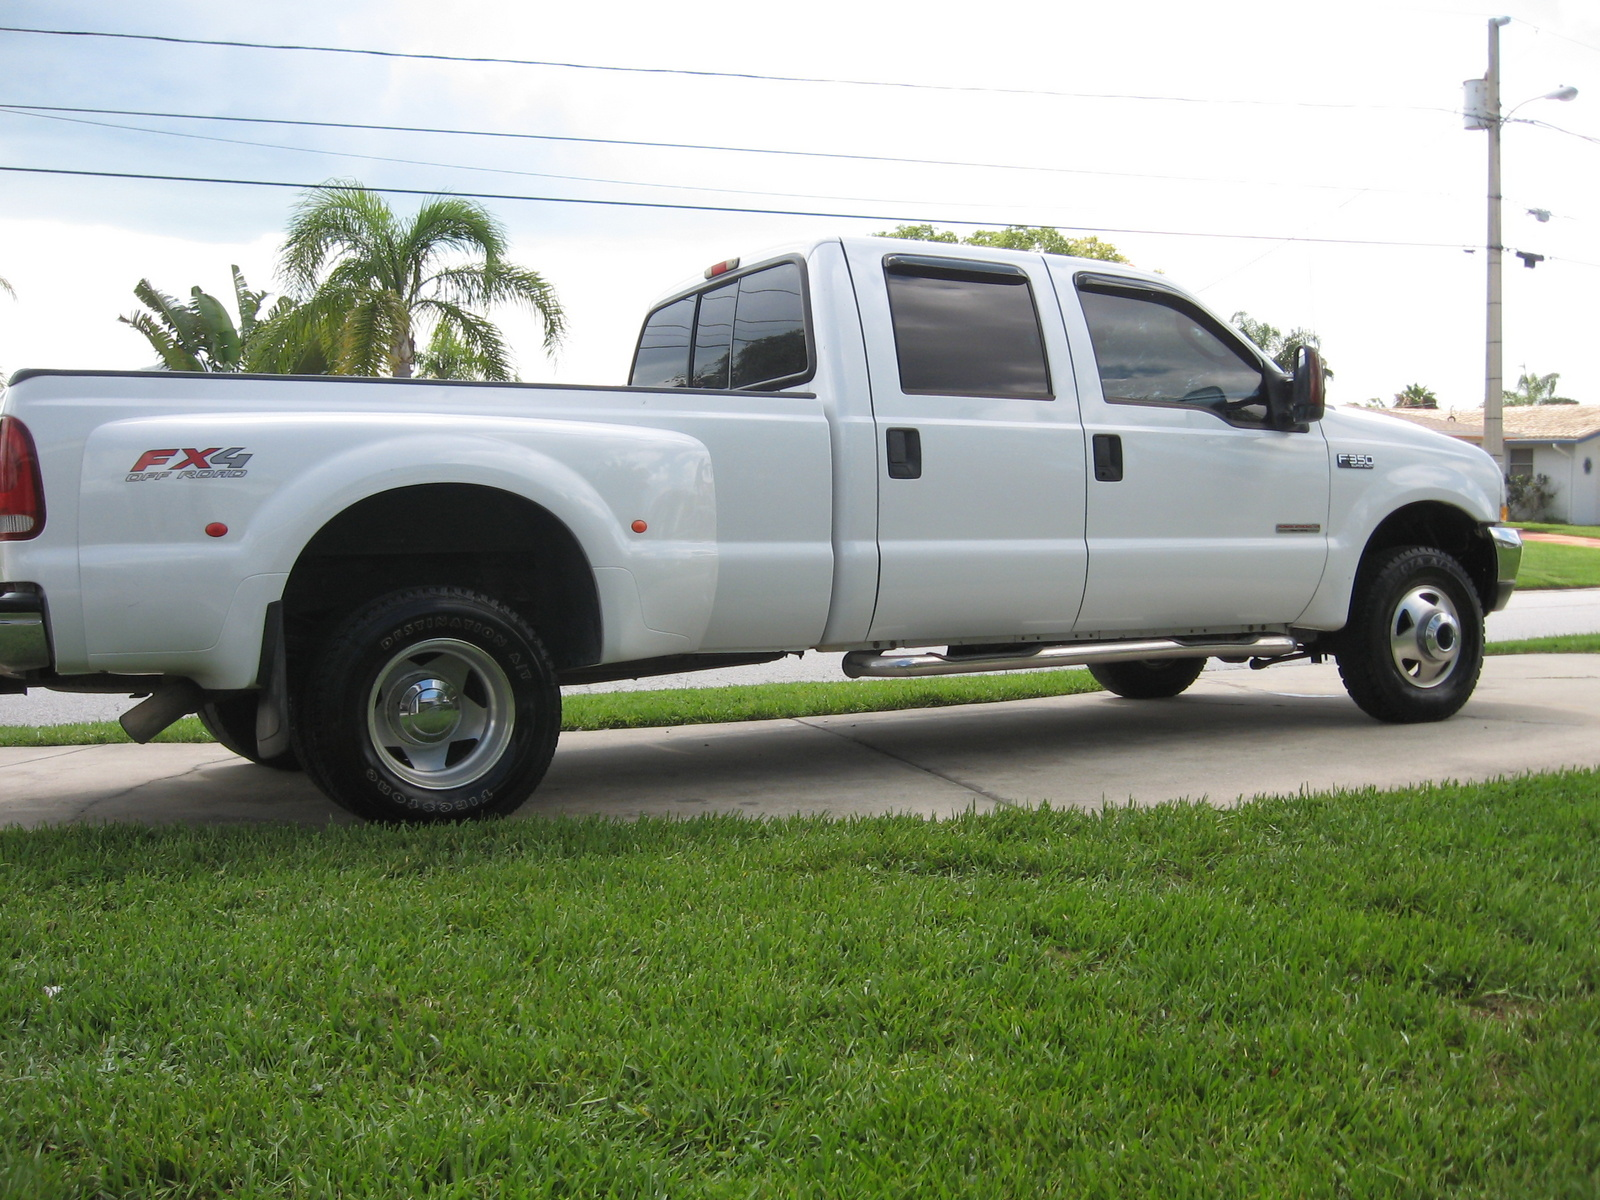 1999 Ford F350 Lariat Super Duty Reviews >> 2004 Ford F-350 Super Duty - Pictures - CarGurus